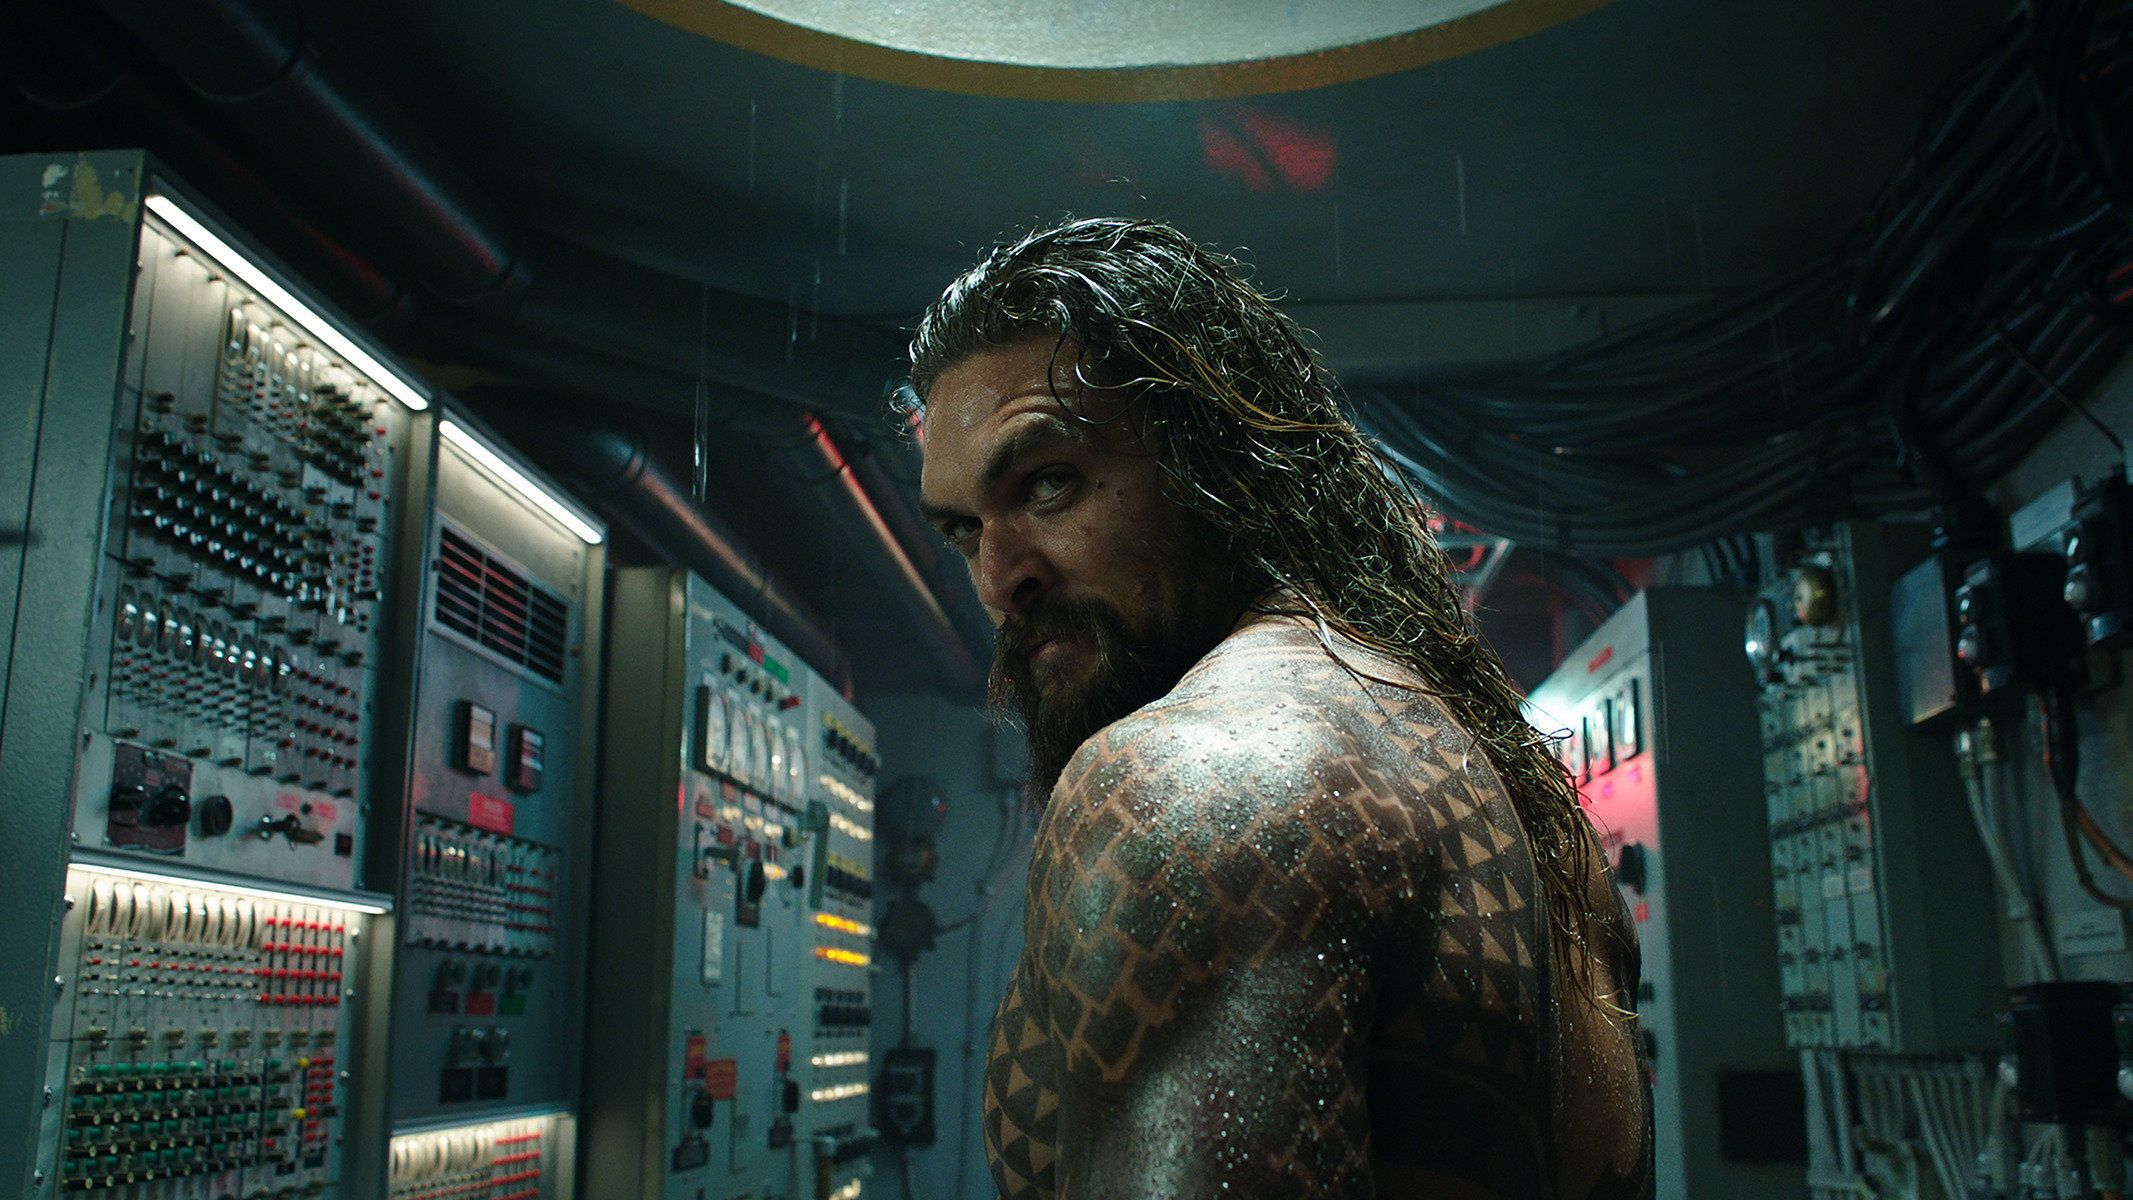 Aquaman knows you're looking at his